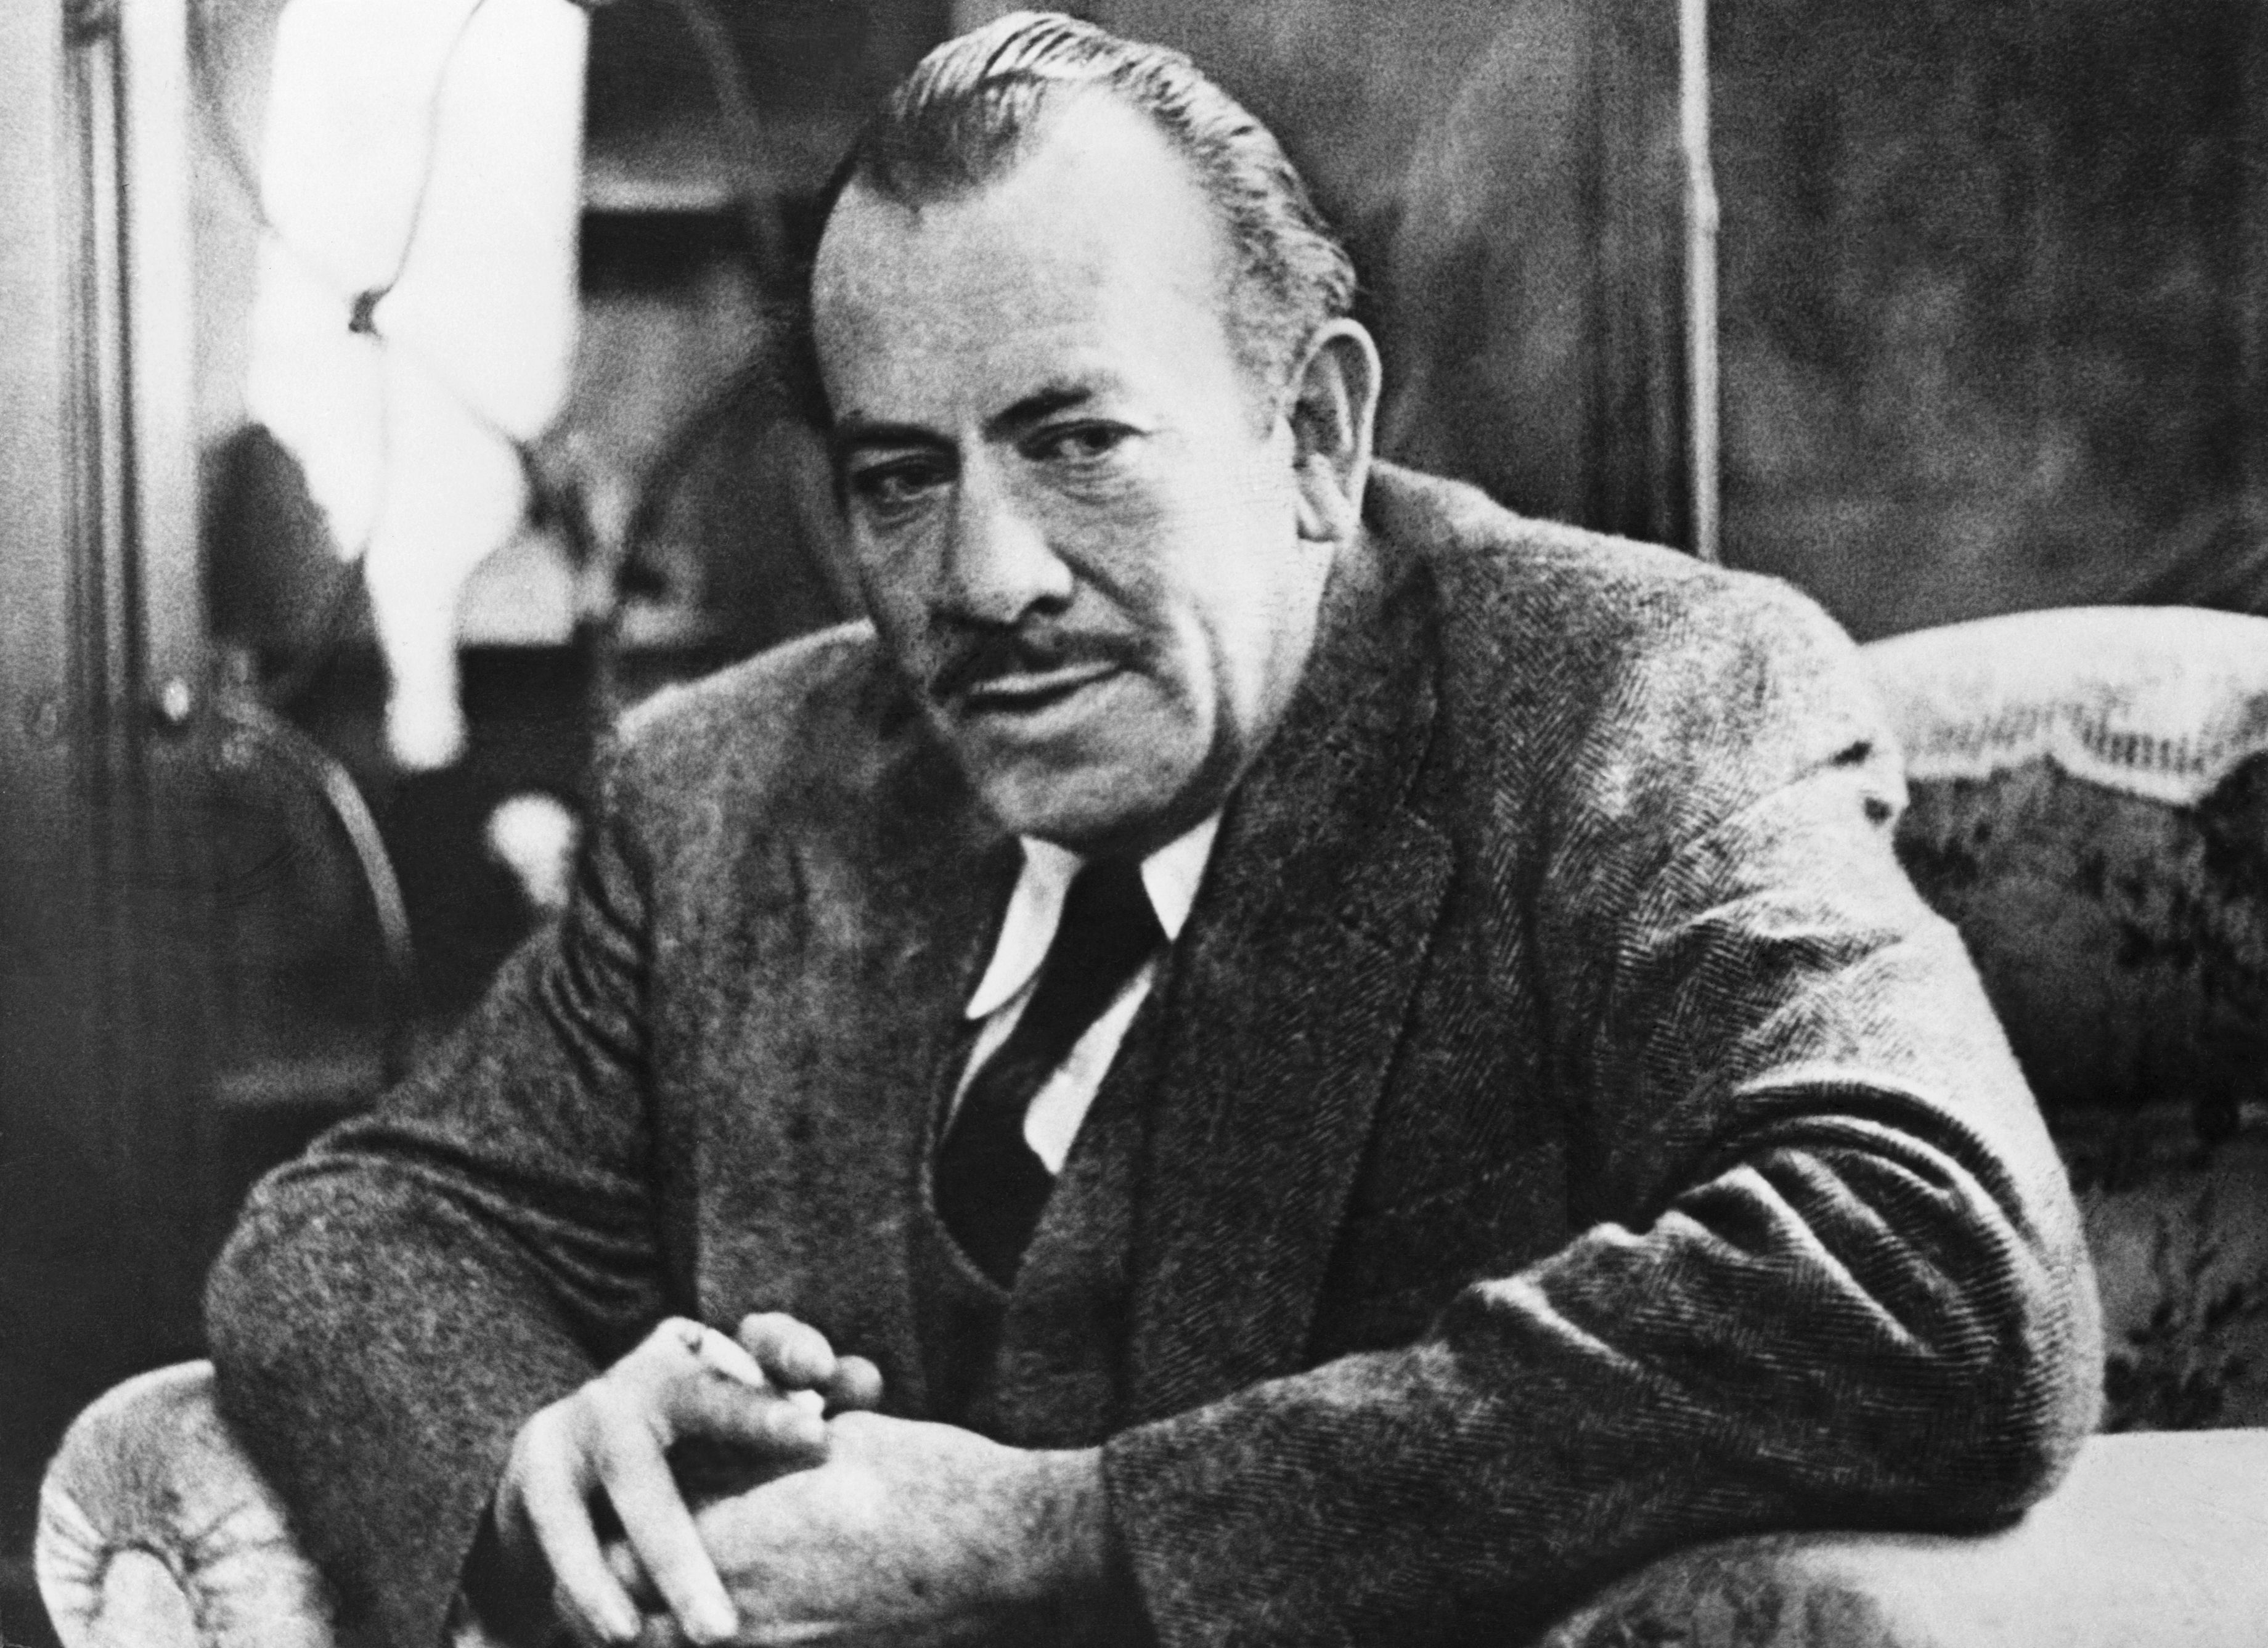 a biography of john steinbeck the american author John steinbeck was the type of author who liked to know his material firsthand he was not content to narrate a story that had no basis in fact thus many of hi.